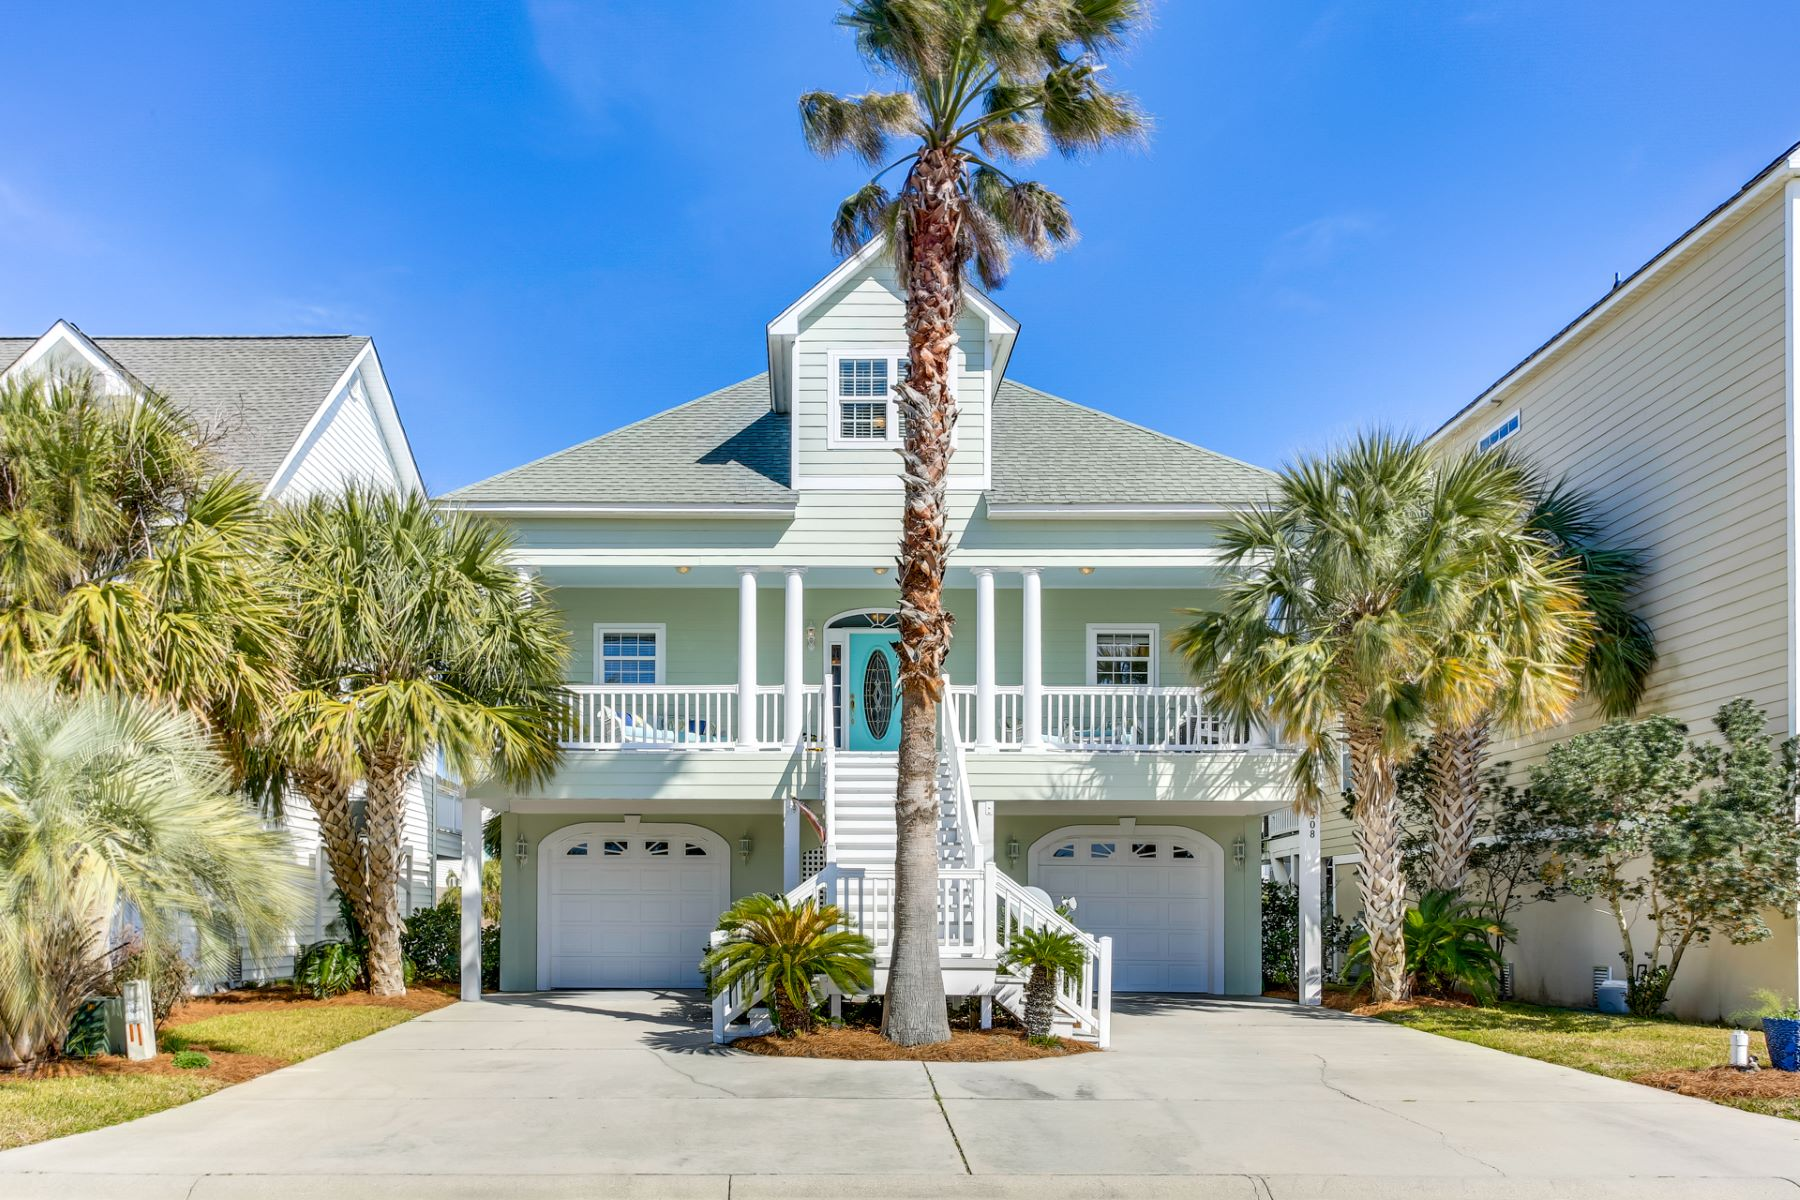 Single Family Homes for Active at Charming Coastal Home with Water Views 508 54th Ave North Myrtle Beach, South Carolina 29582 United States